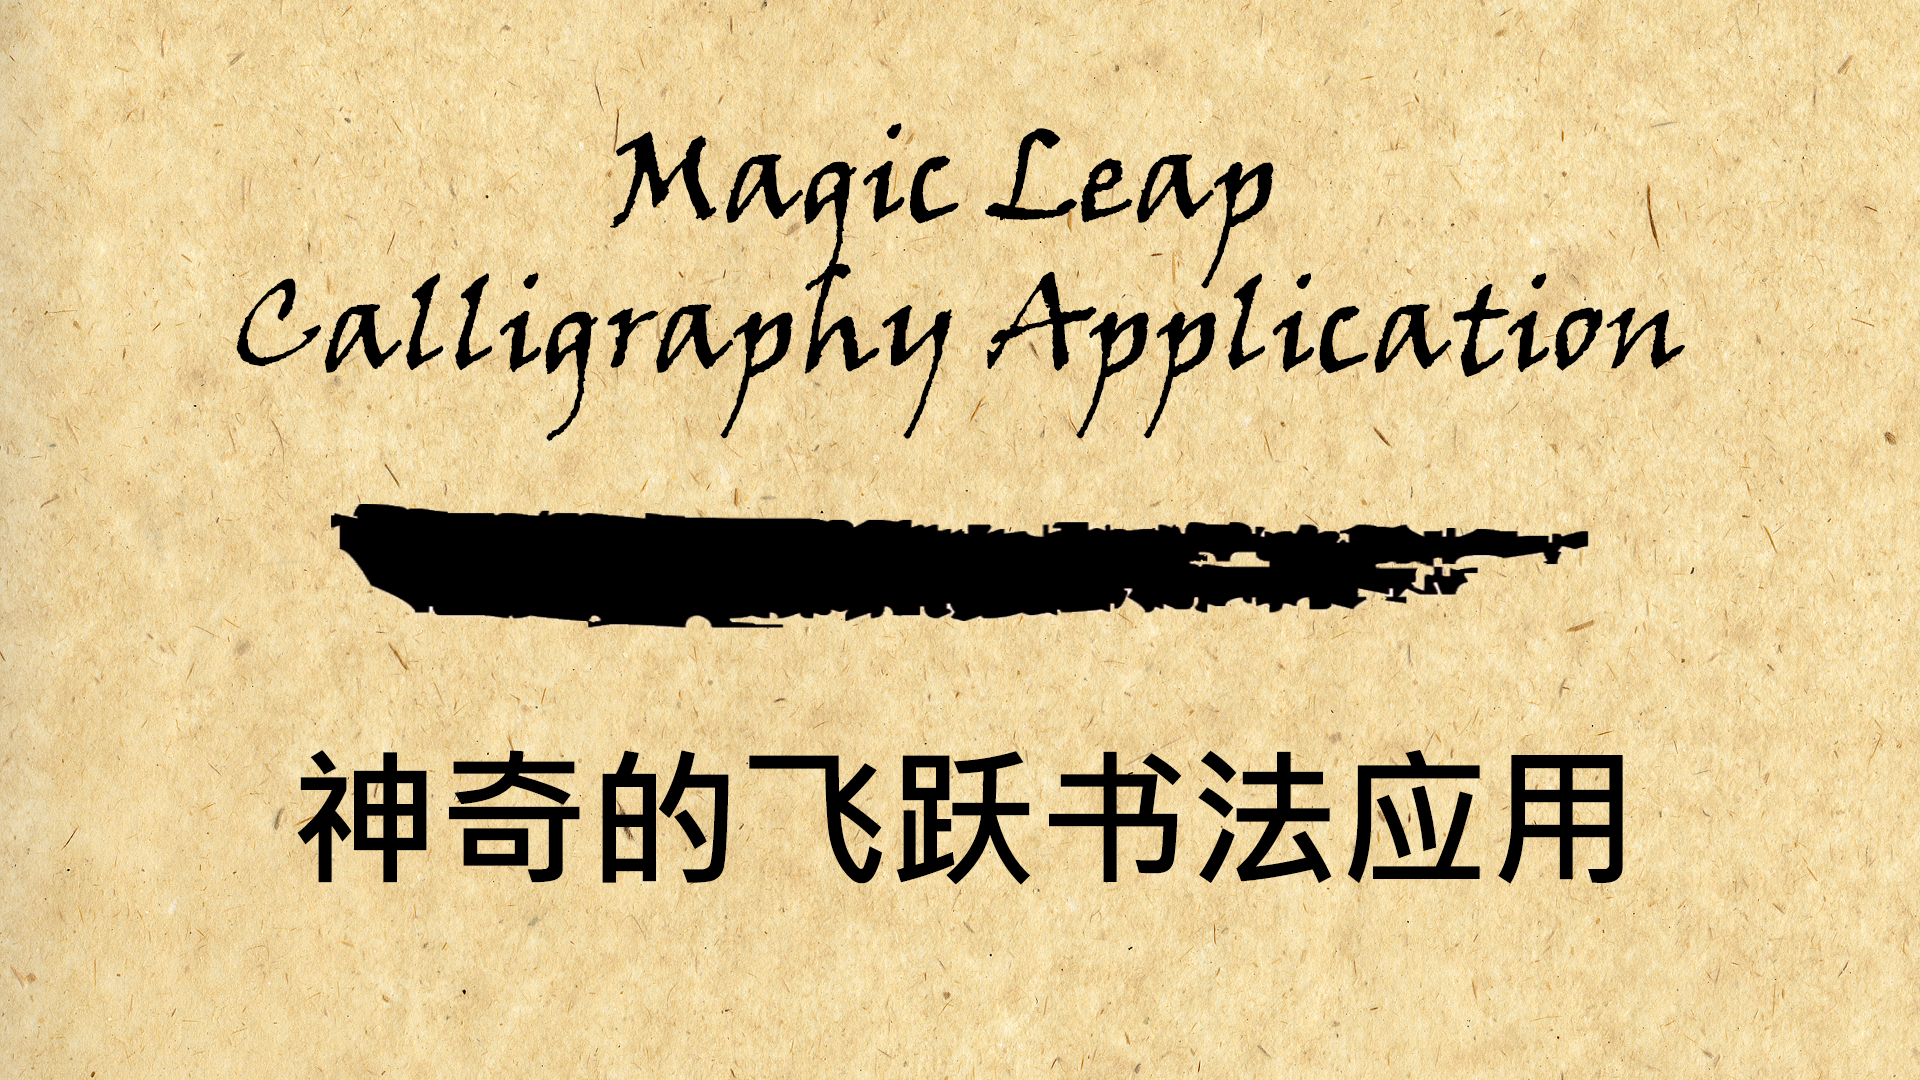 Magic+Leap+Calligraphy+Application+-+1440+X+1080.jpg